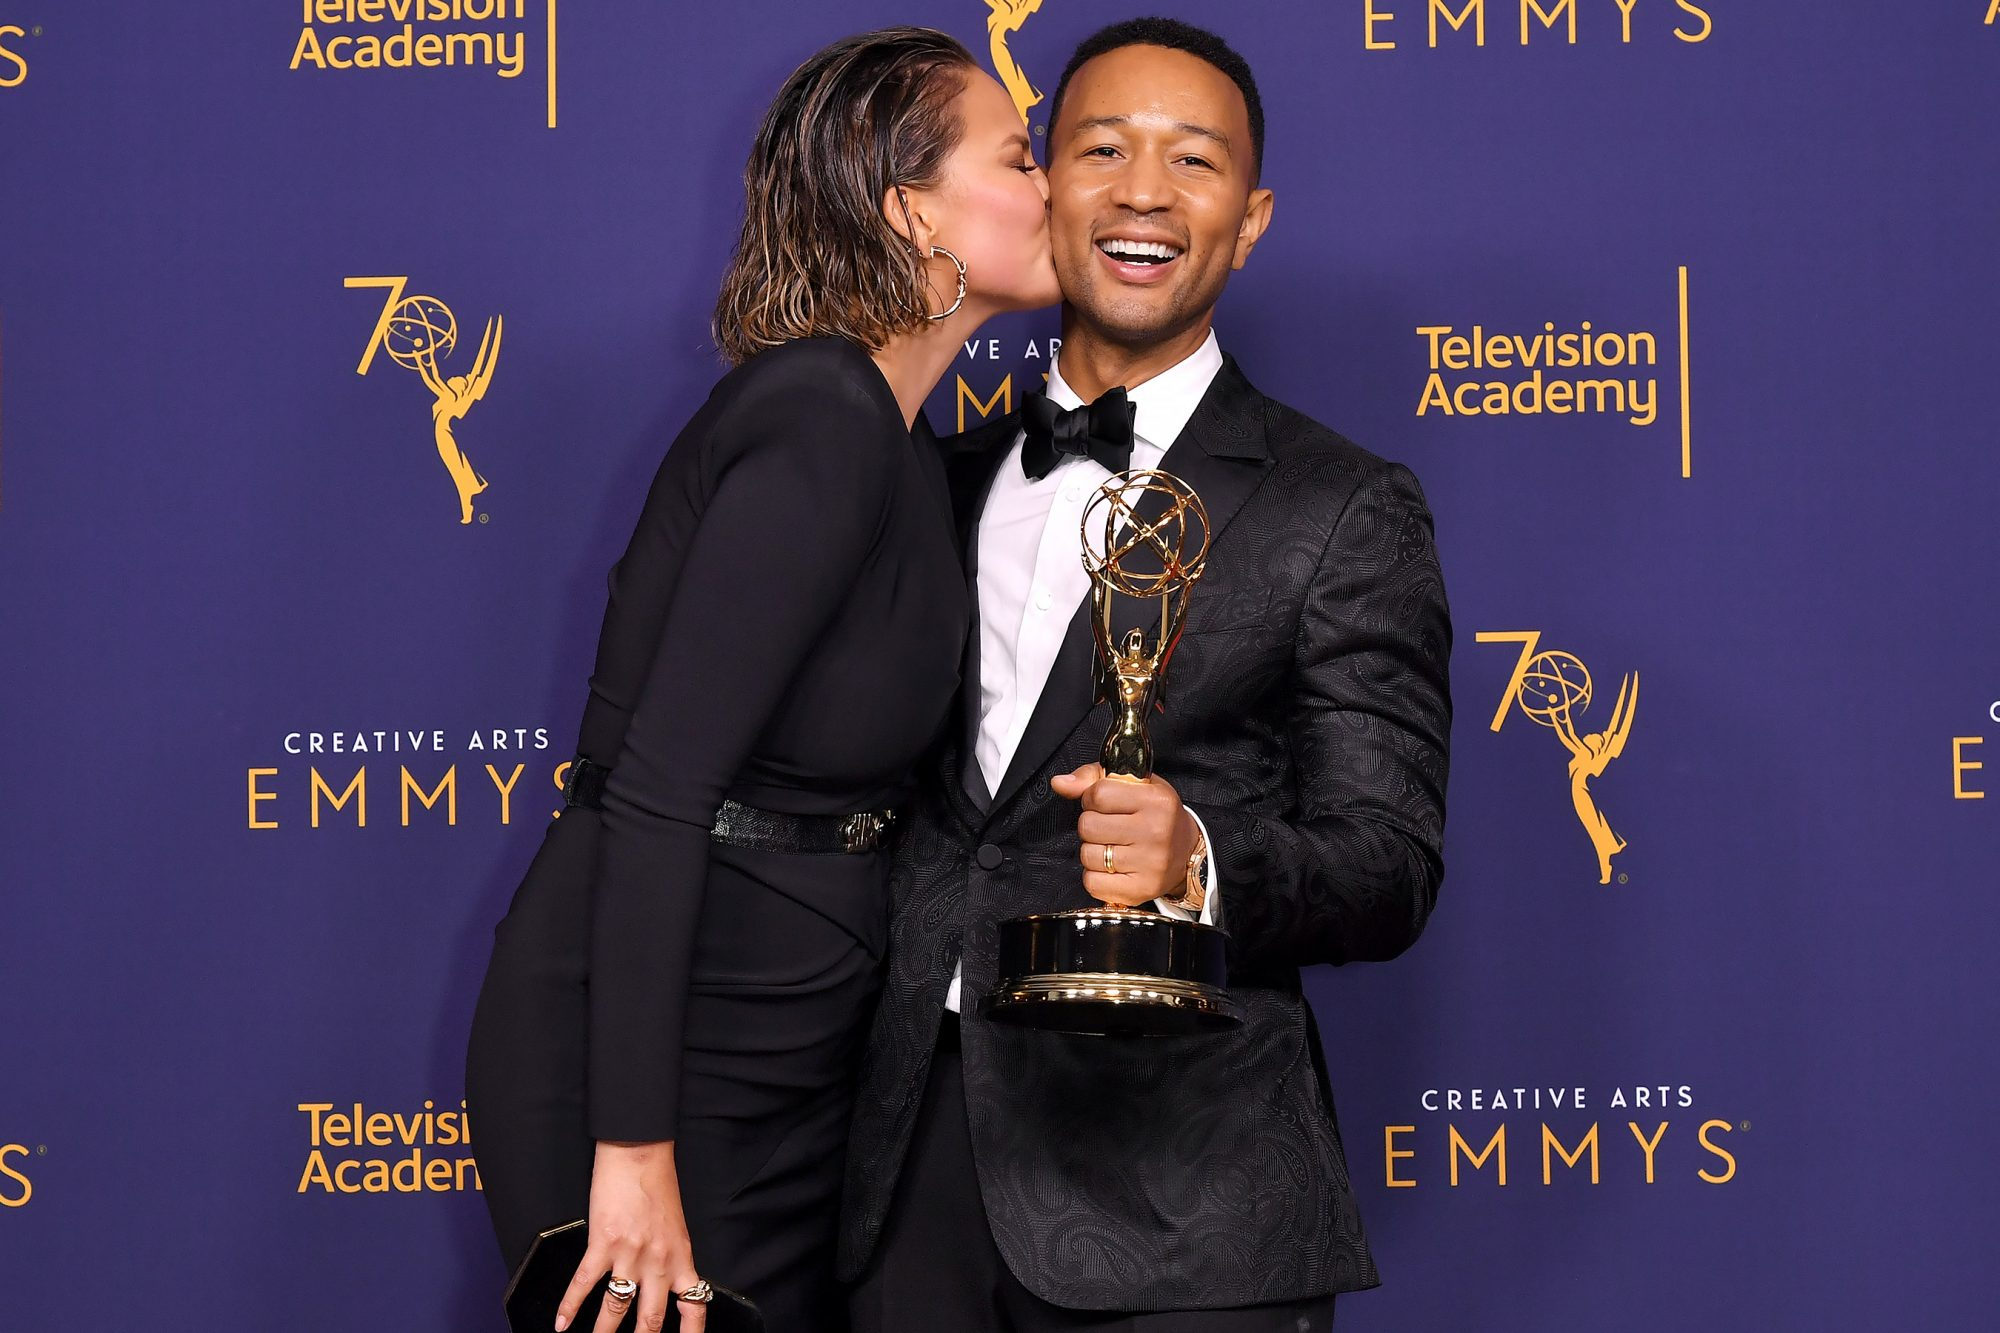 Creative Arts Emmys, Press Room, Day 2, Los Angeles, USA - 09 Sep 2018